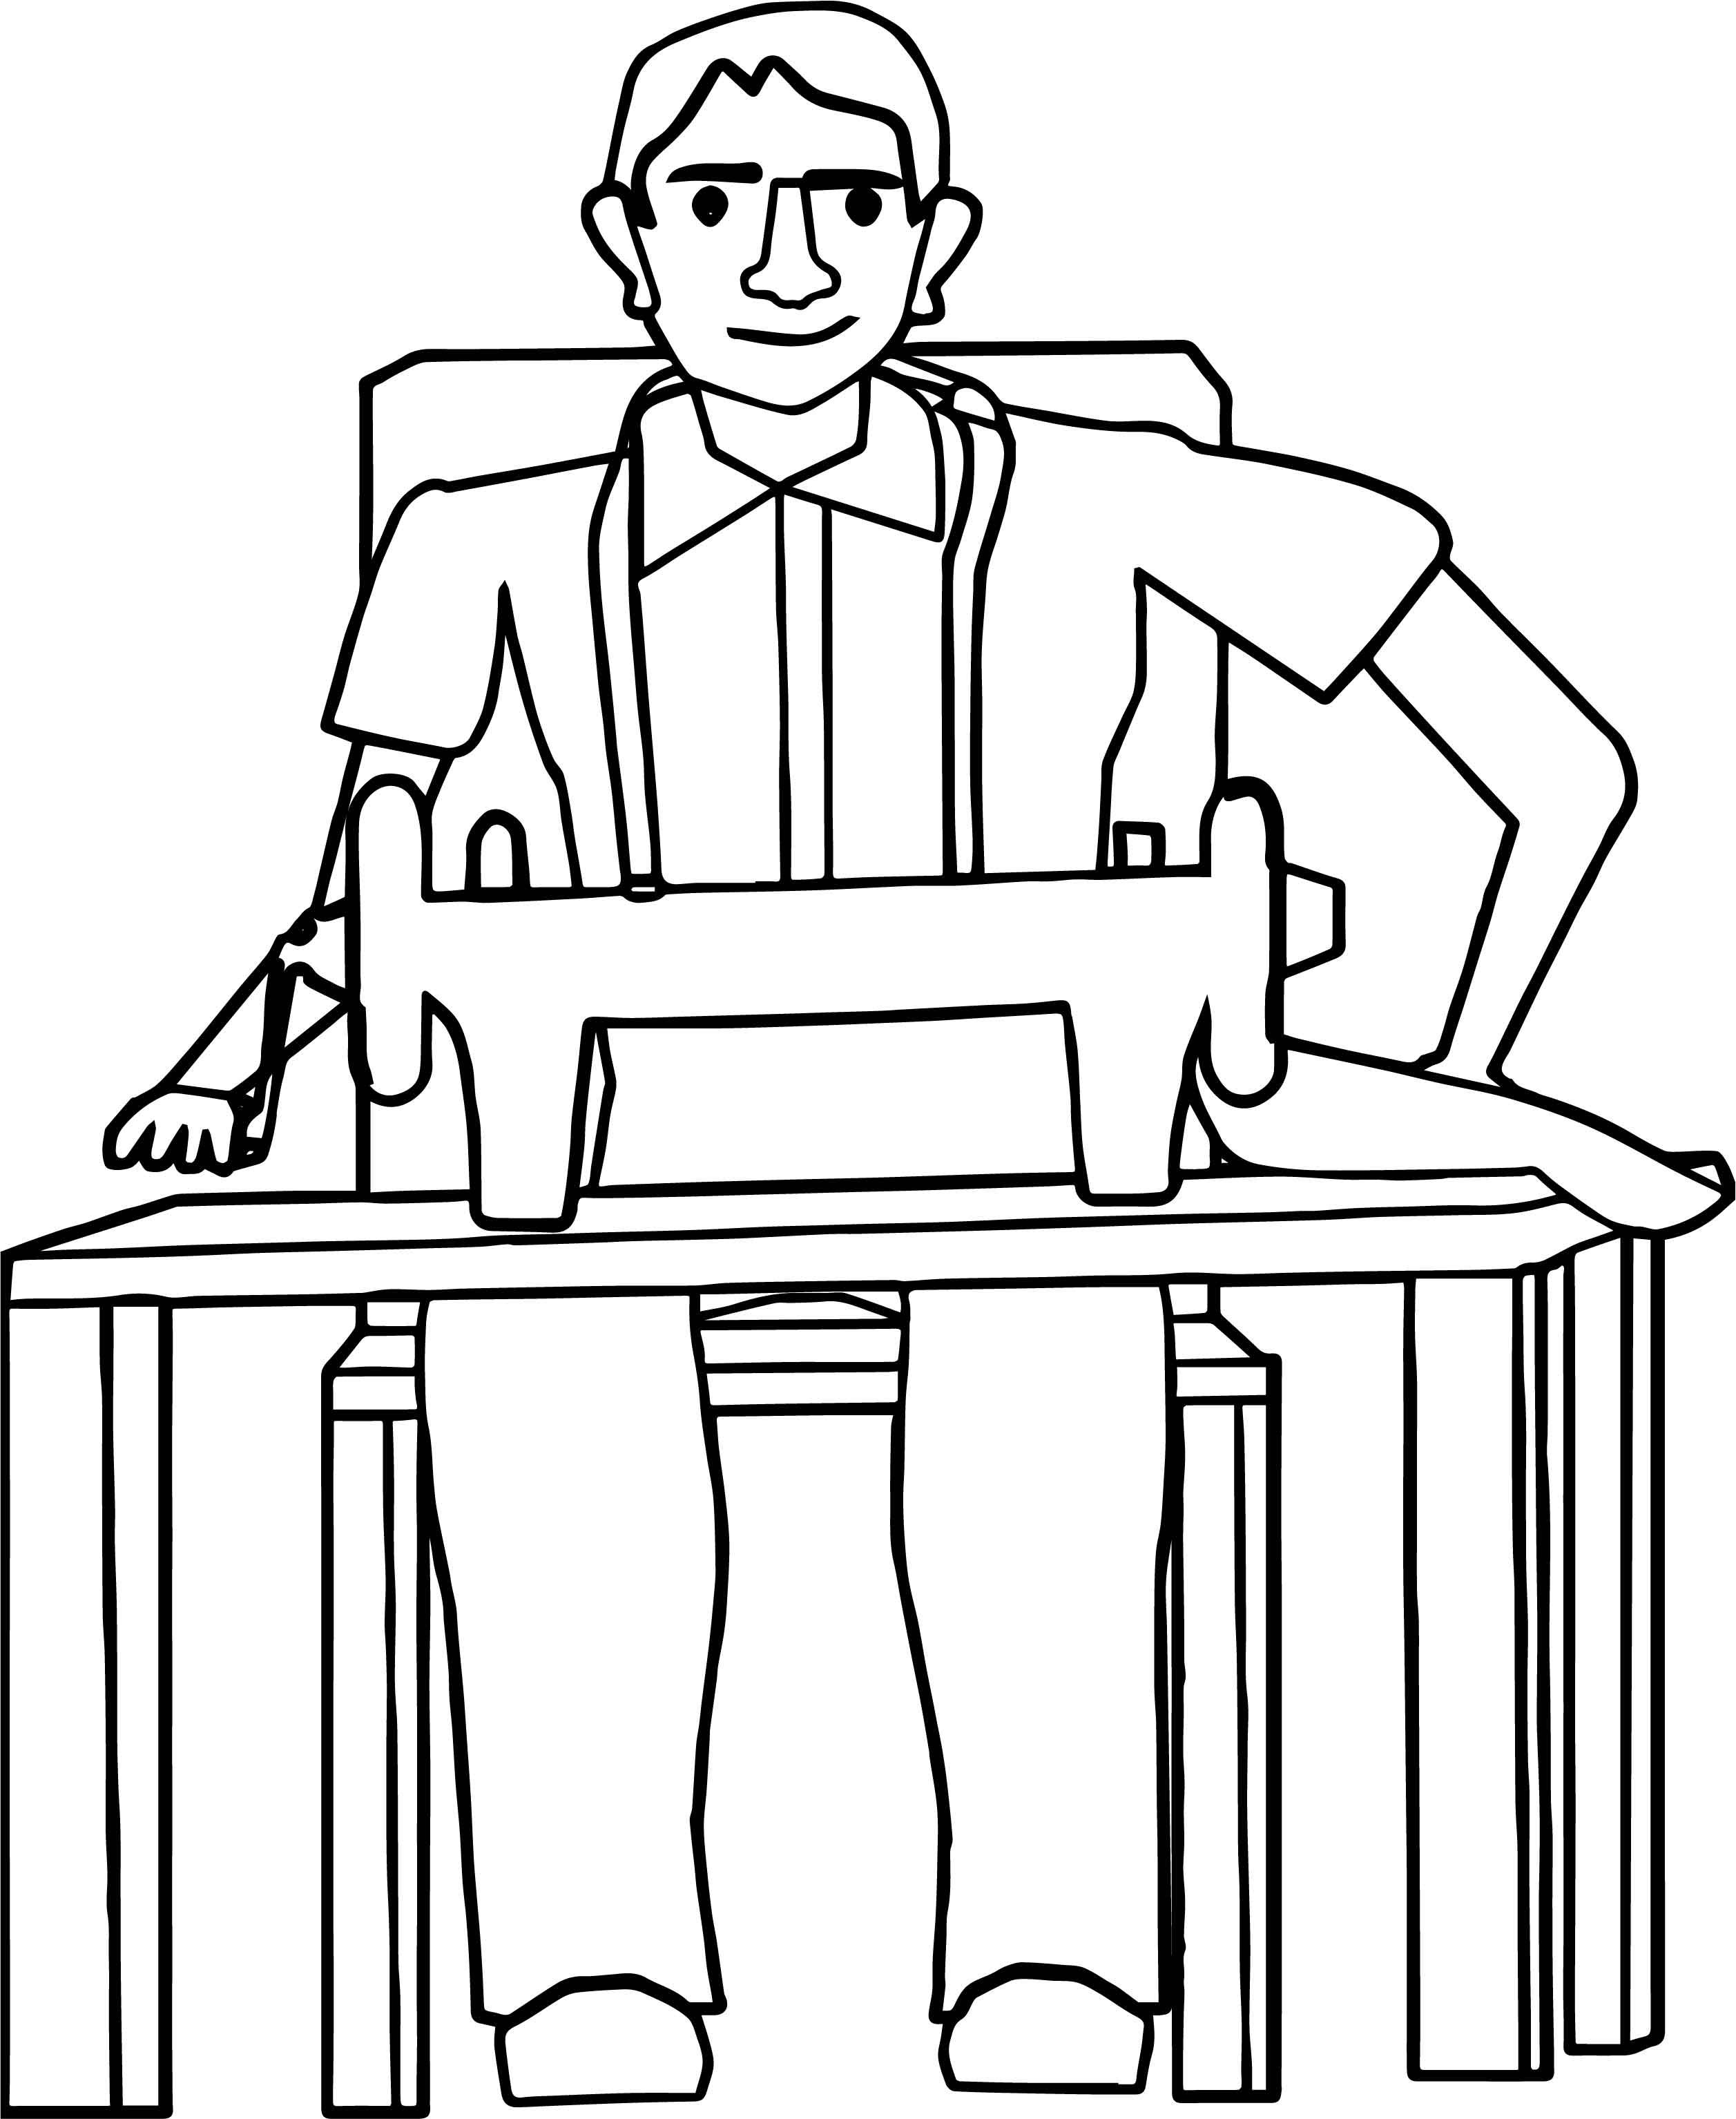 Awesome Tailor Man Machine Coloring Page Coloring Pages Color Free Printable Coloring Sheets